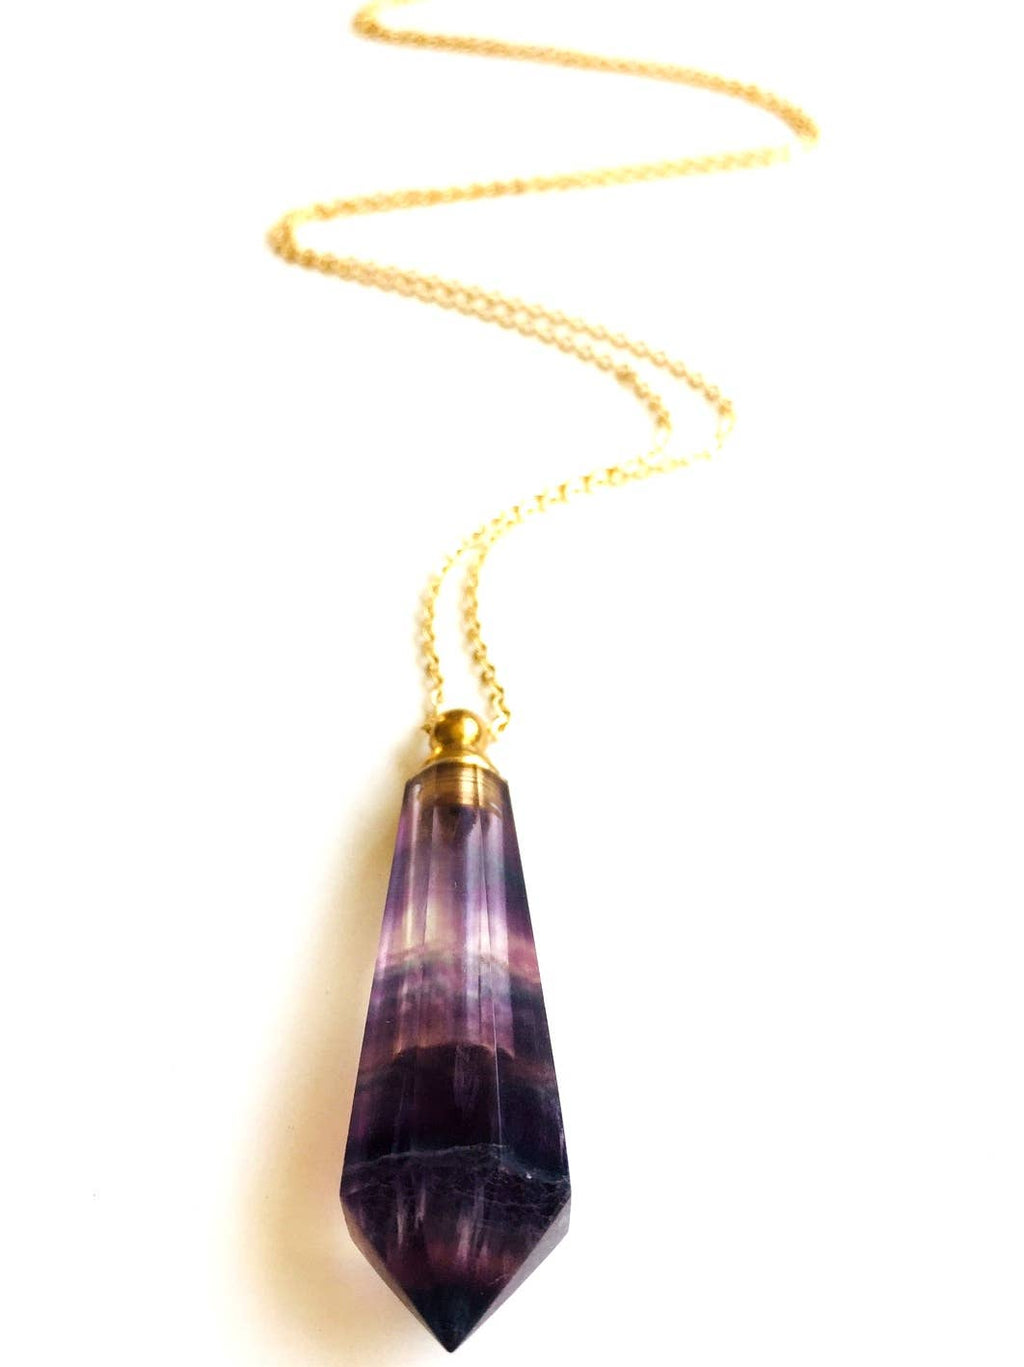 Heather Kahn Halcyon Elixir Necklace - Wanderlustre